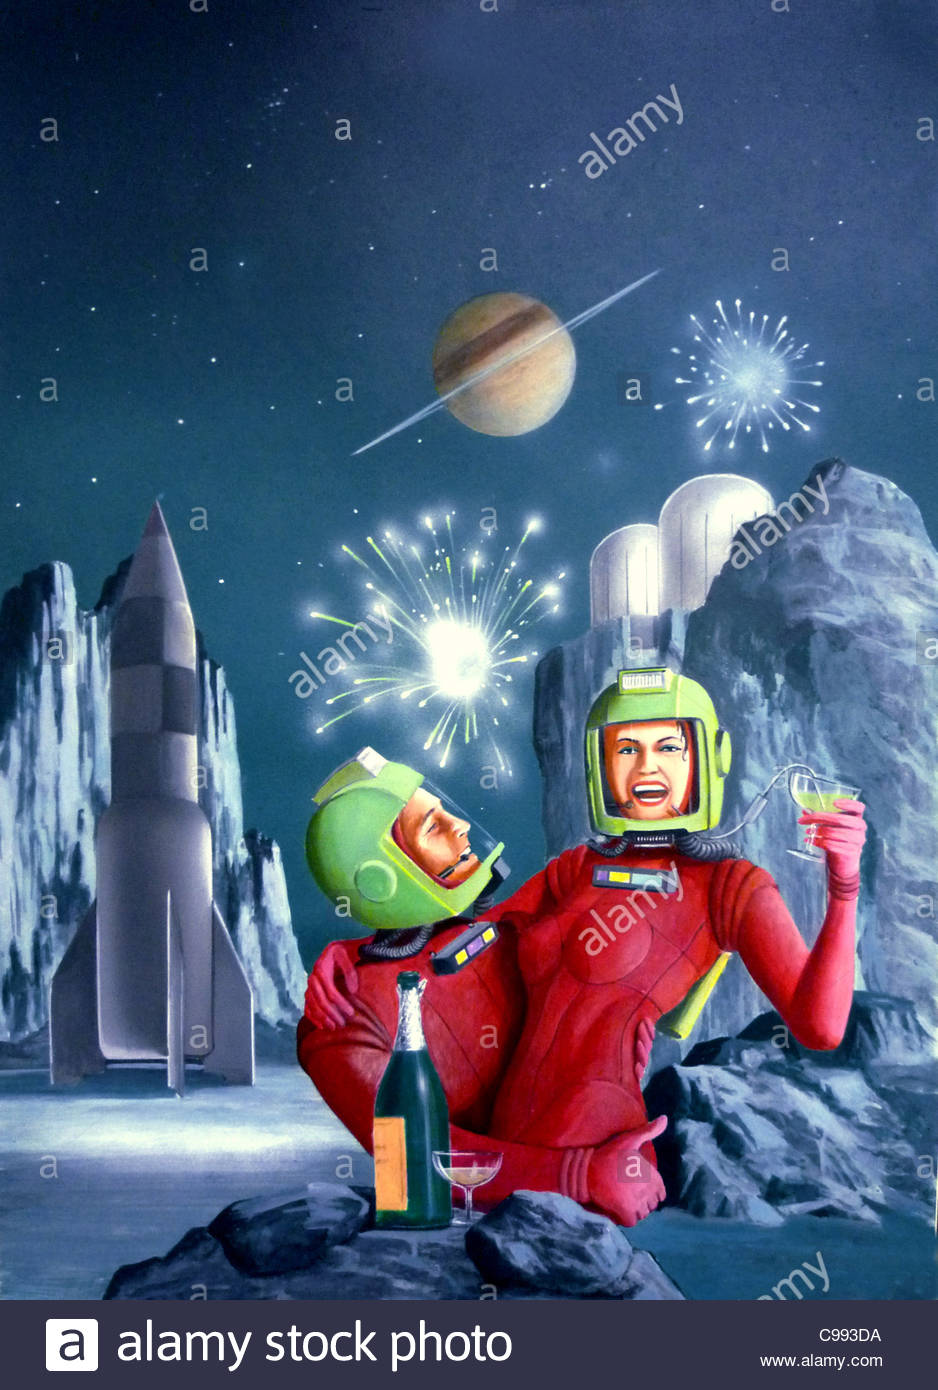 foreign Planet conquest Champagne astronauts Space universe Planet planet u - Stock Image